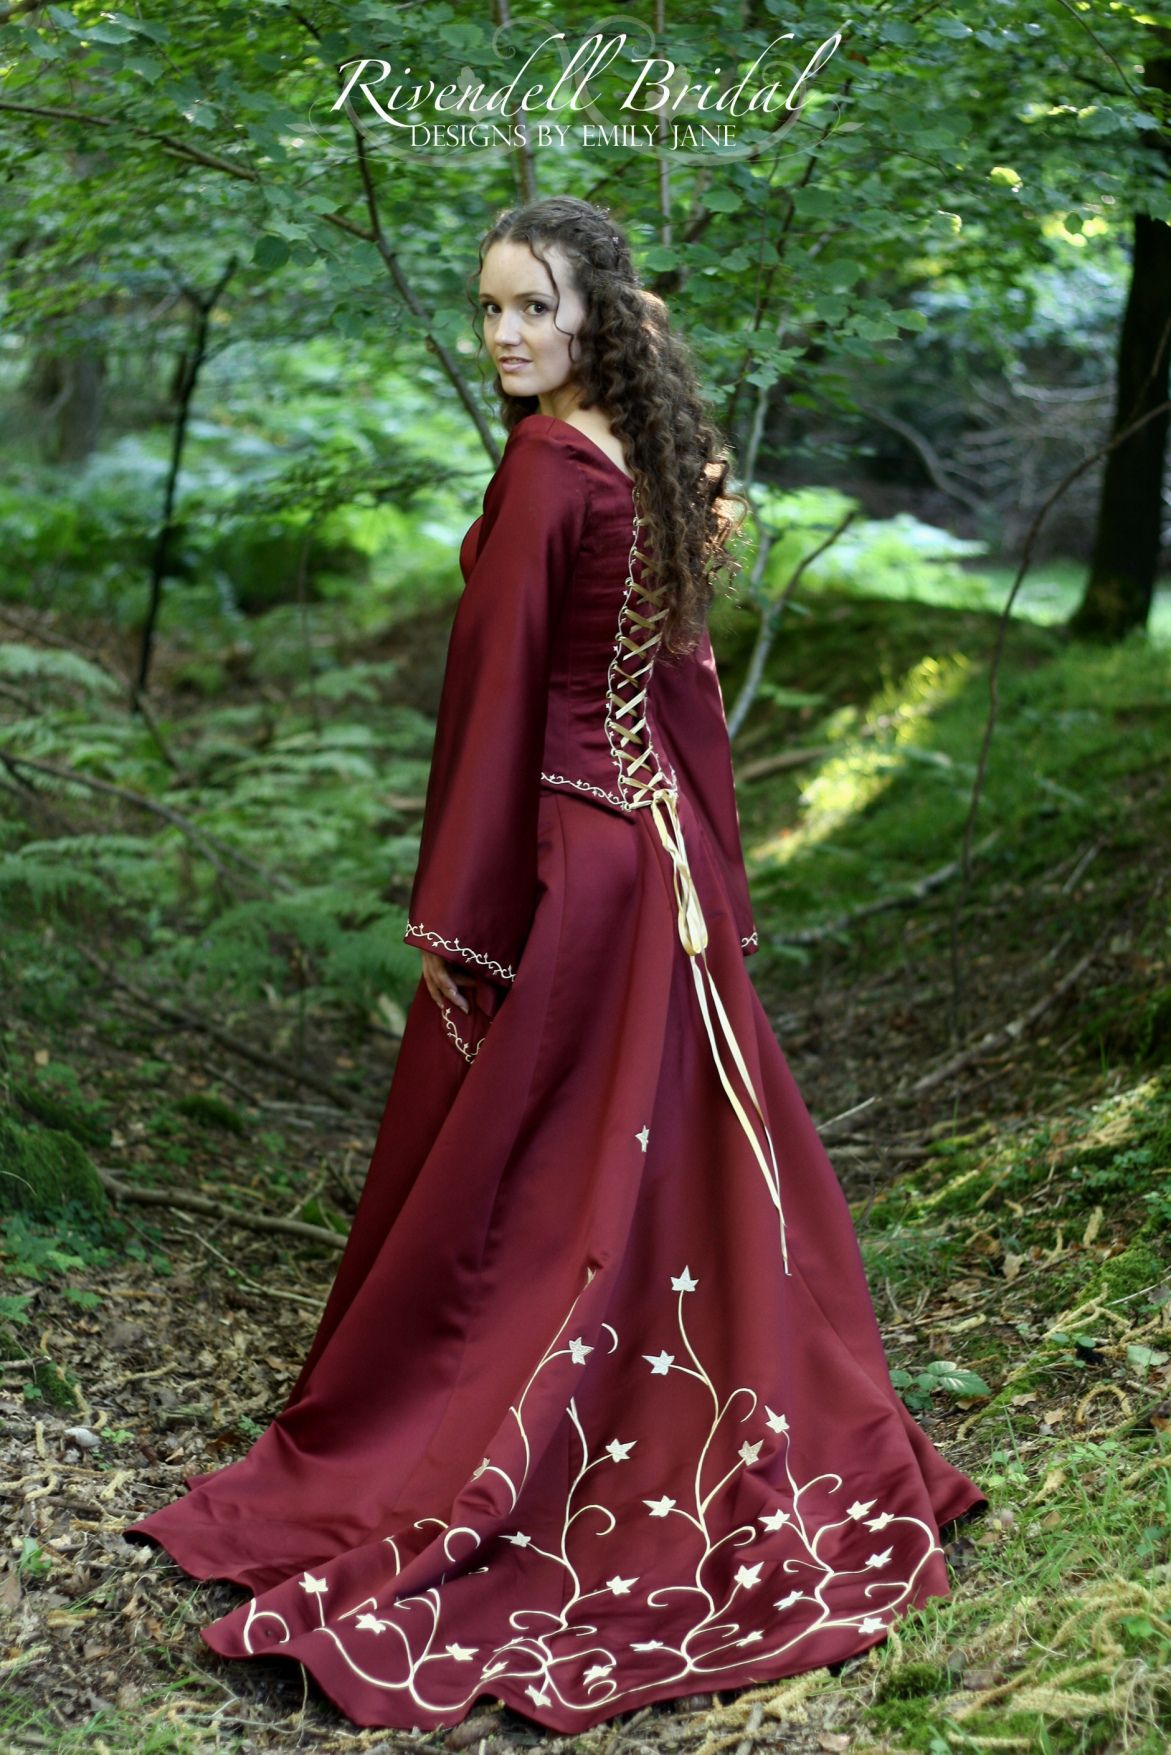 Pin by Rachel Gamber on D&D Dresses Red in 2020 Viking